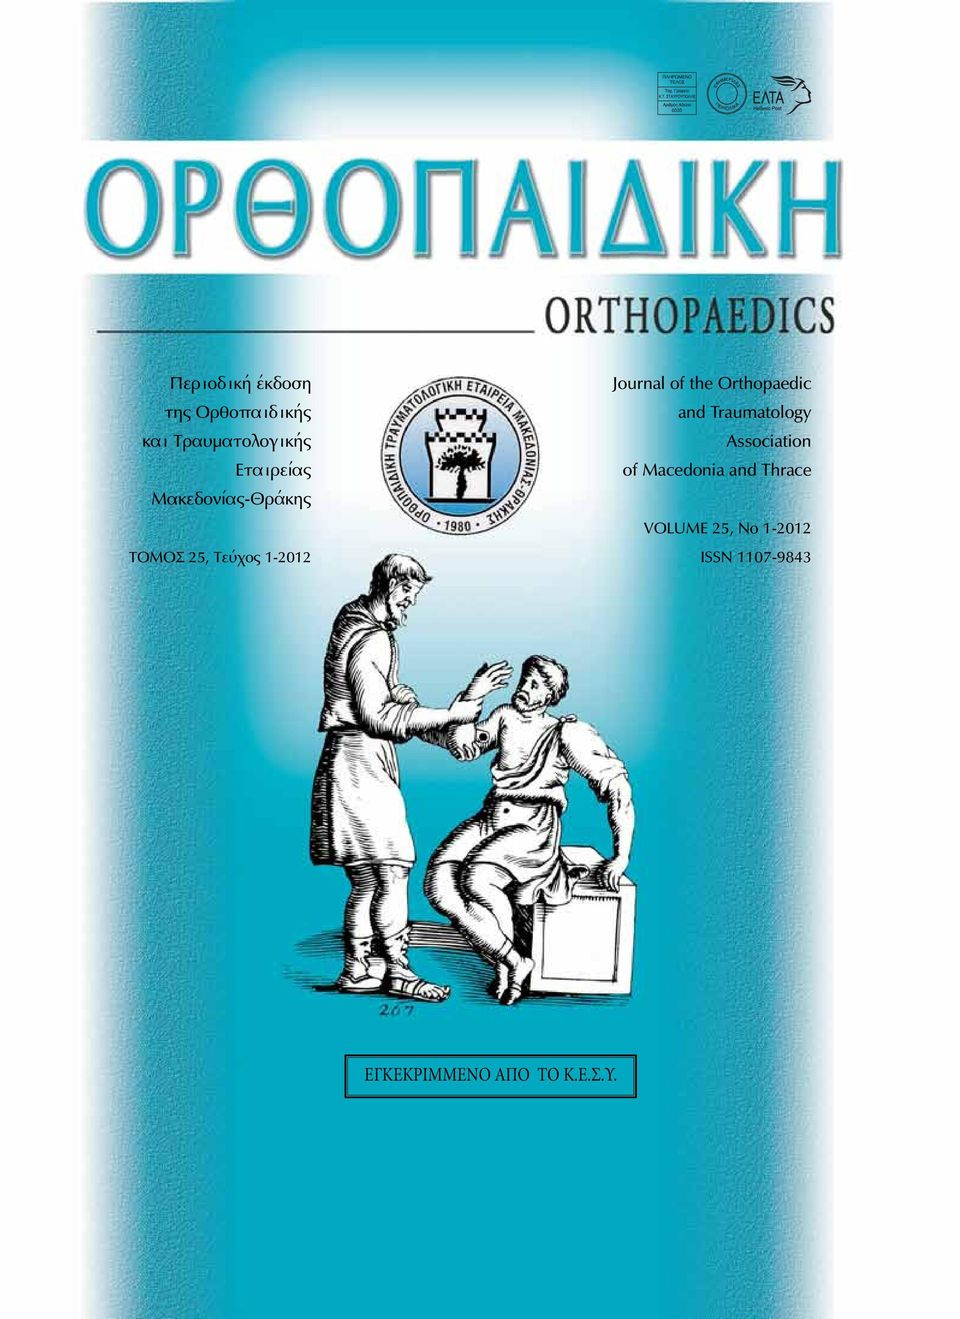 the Orthopaedic and Traumatology Association of Macedonia and